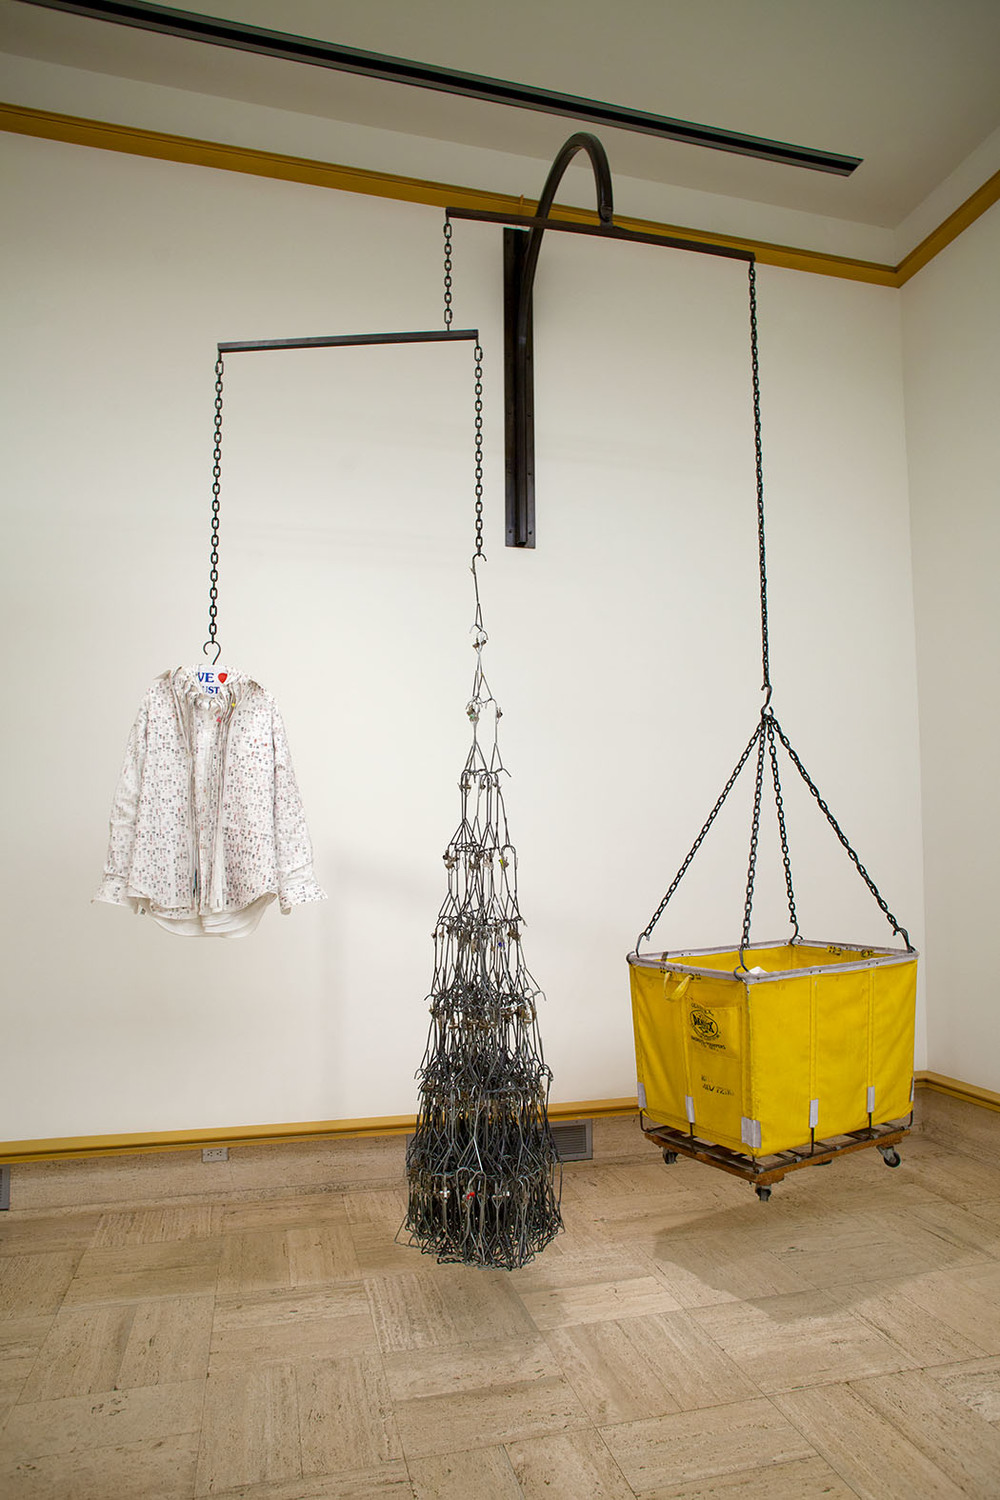 Untitled, Found Objects; Shirts, Hangers, Chains, Steel, Cart Dimensions Variable, 2013.